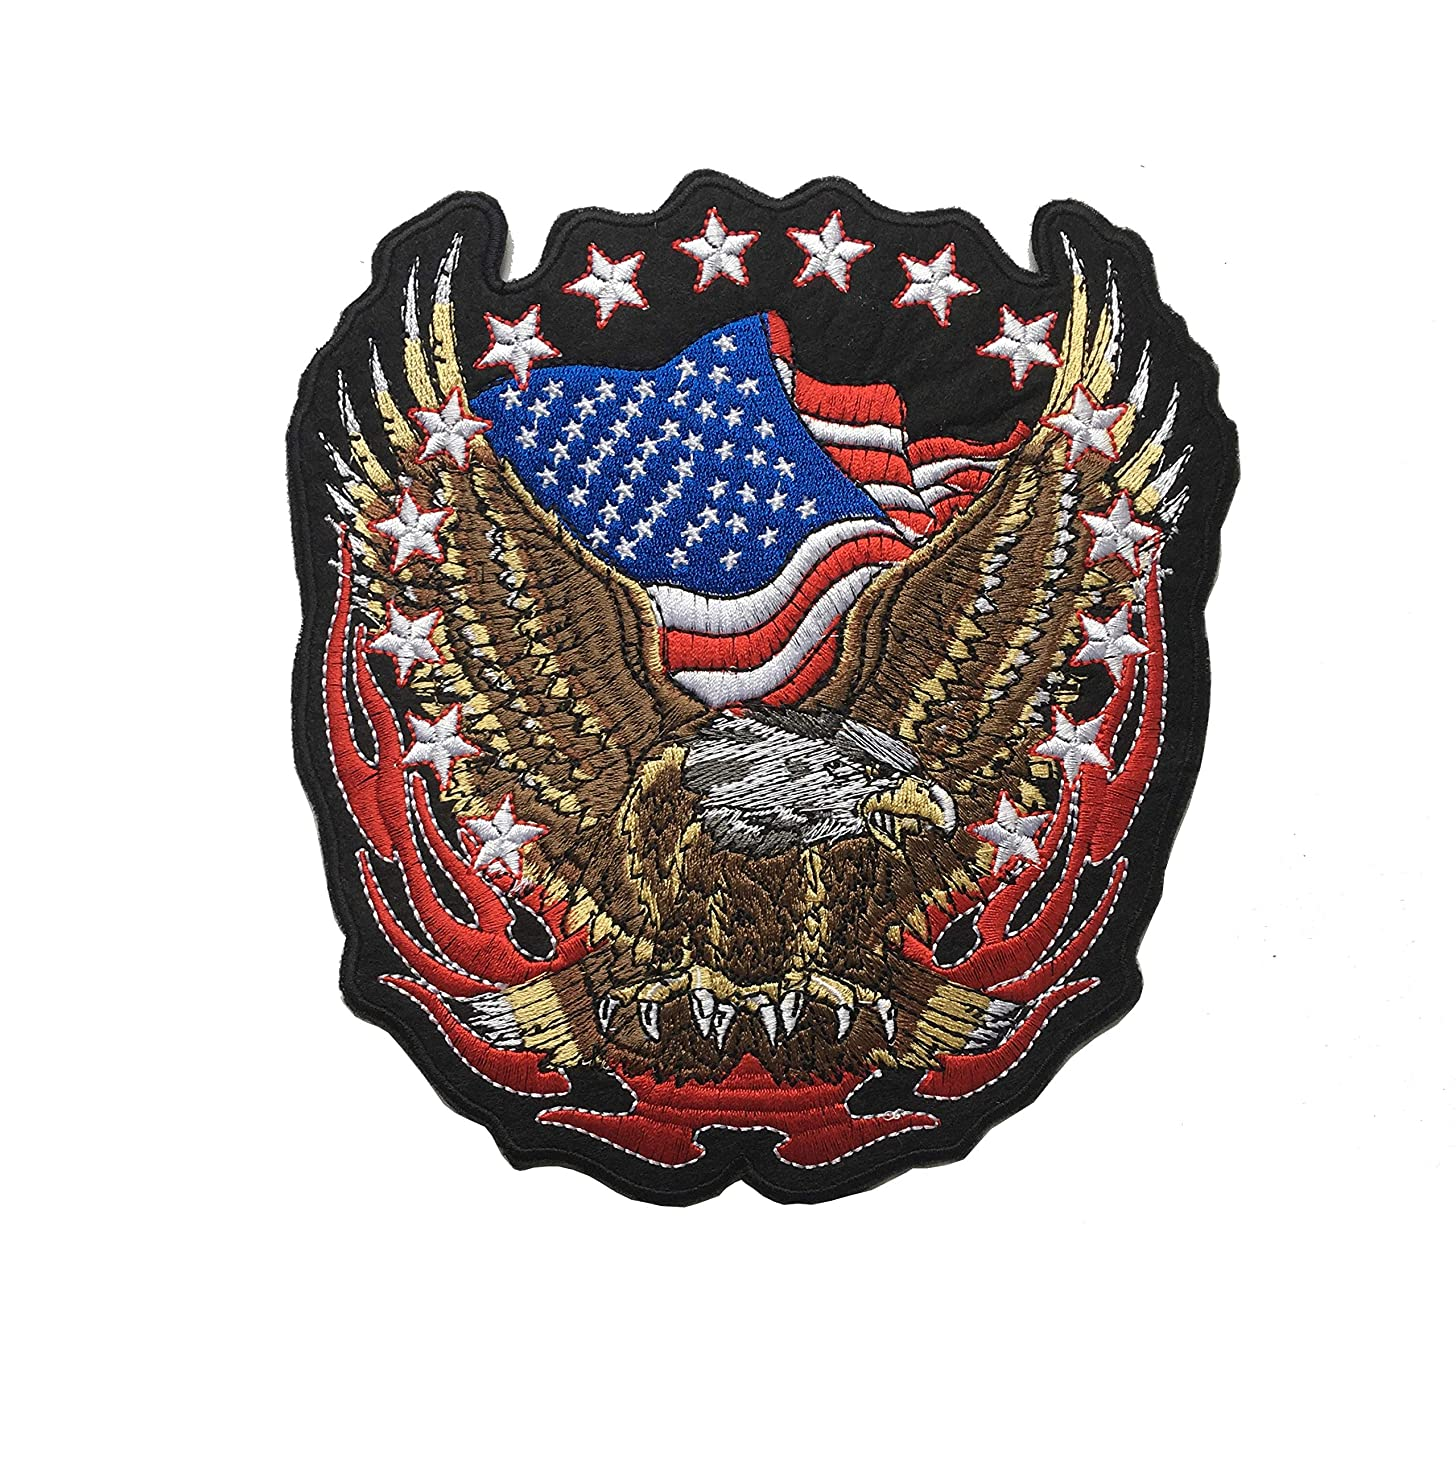 1pcs Large Patriotic Flying Eagle American Flags Embroidered Iron On Sew on Patch (A-Size: 7.17.5inch)